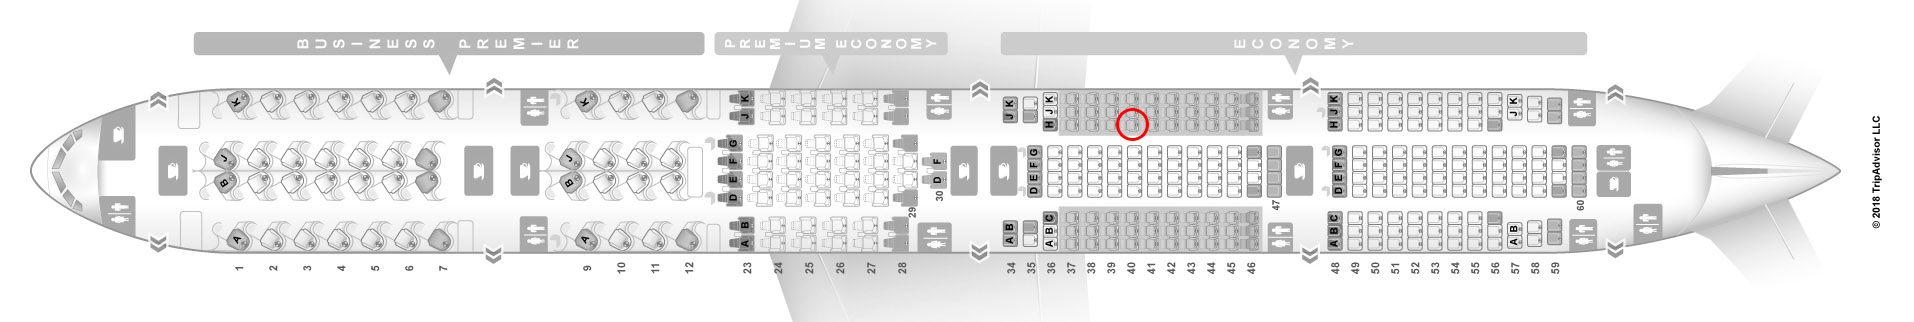 Air New Zealand 777-300er seat map